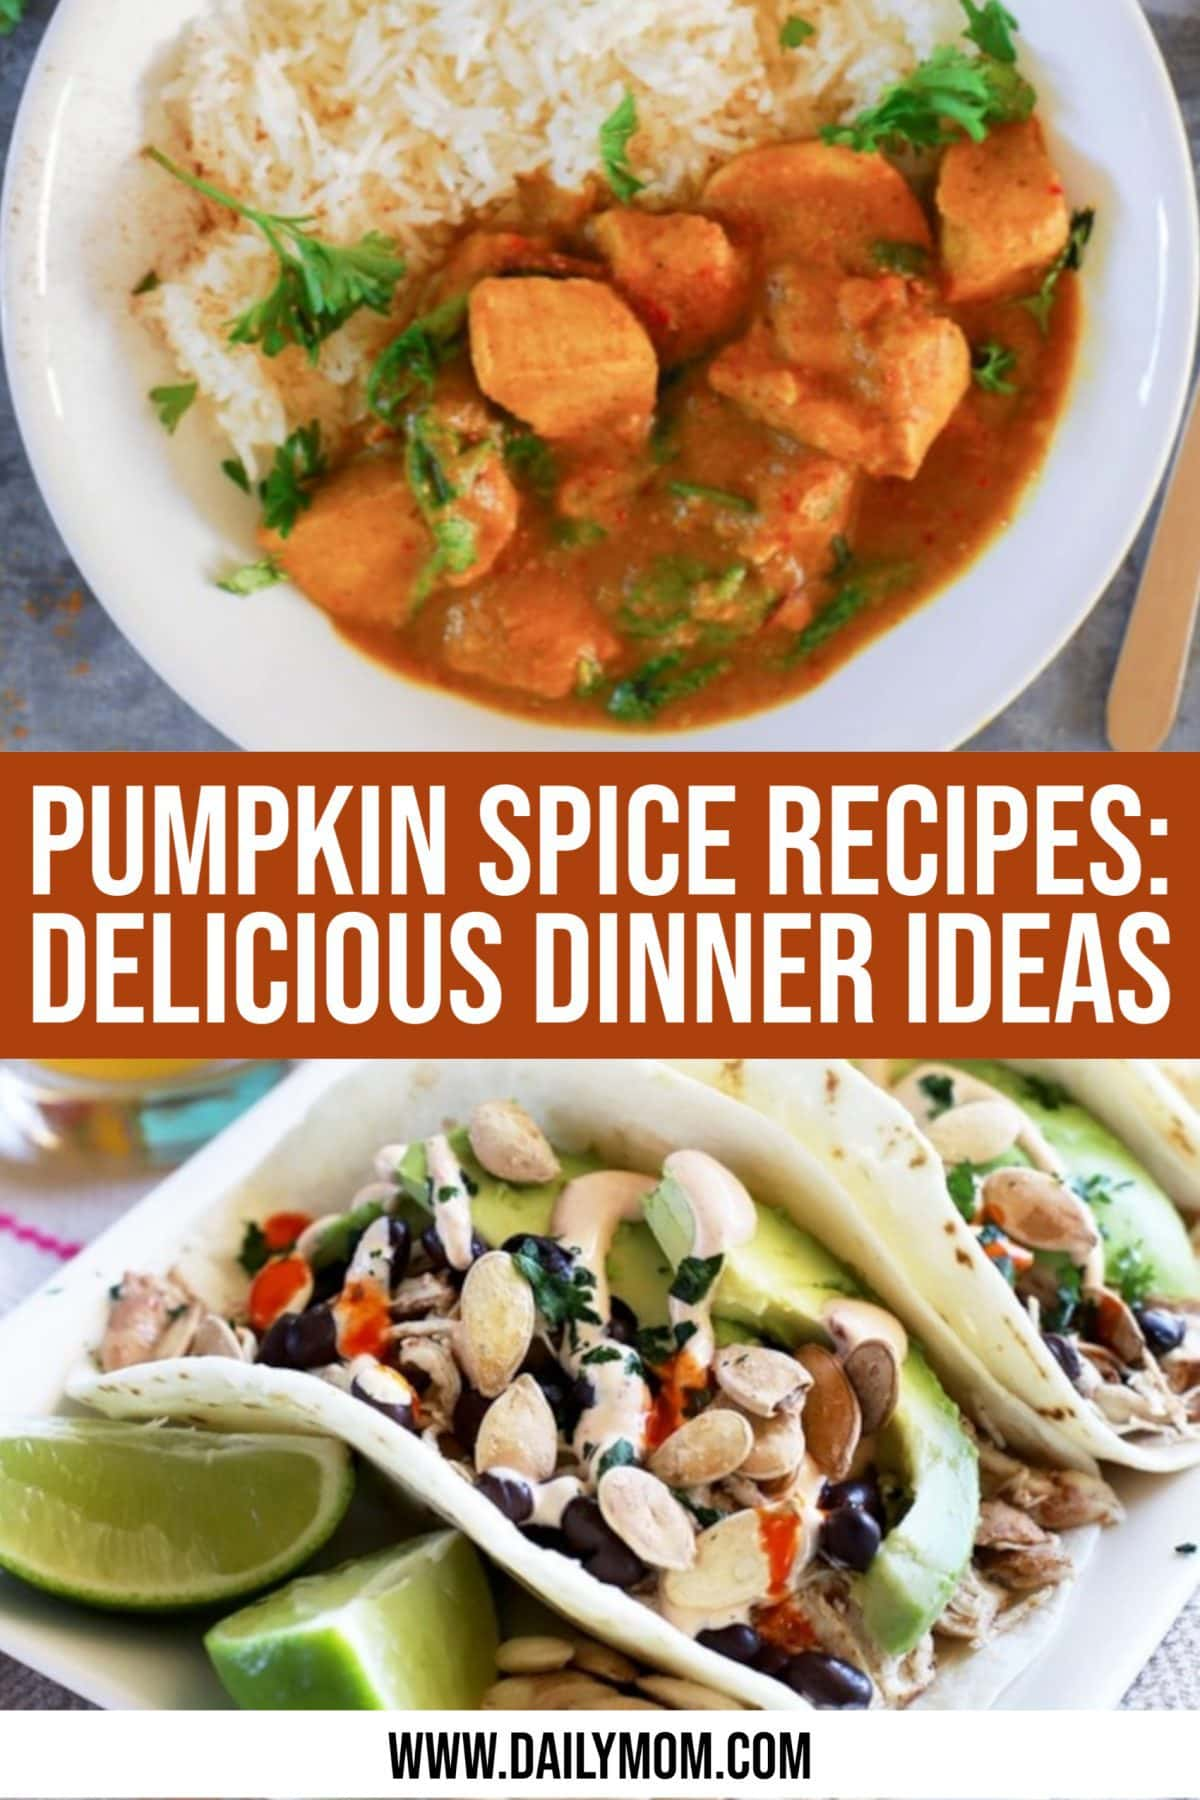 Pumpkin Spice Recipes: 5 Delicious Dinners